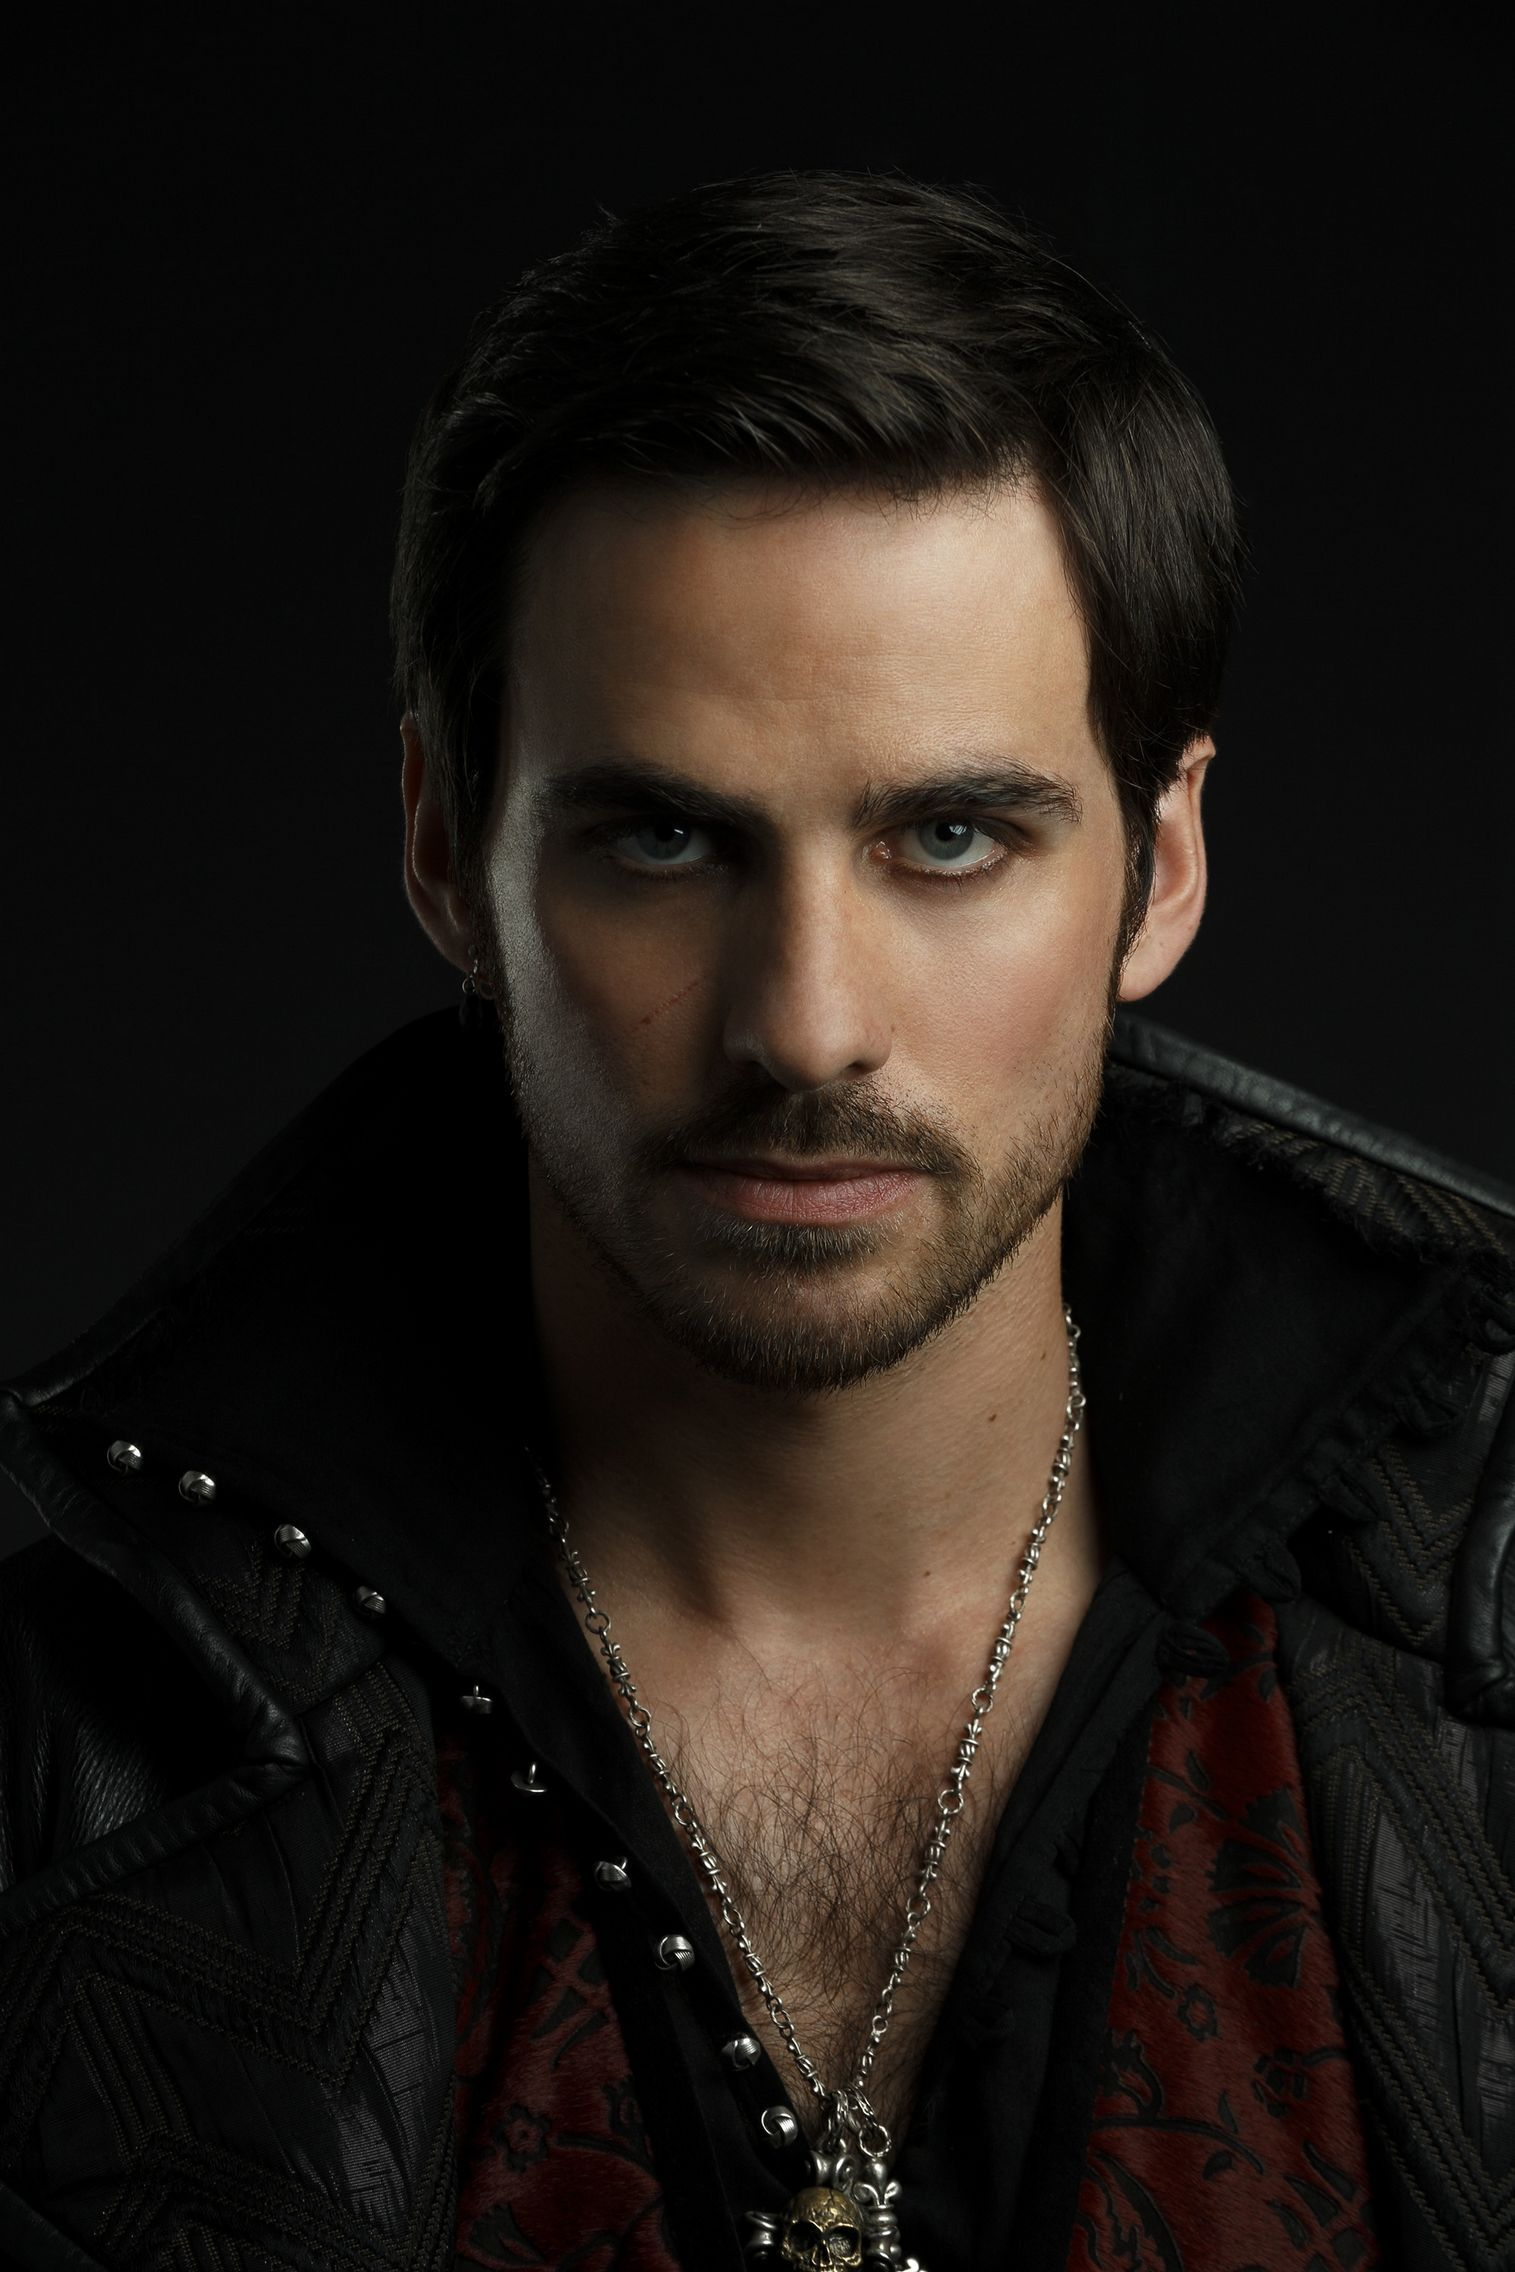 Colin O'Donoghue as Captain Hook ✨